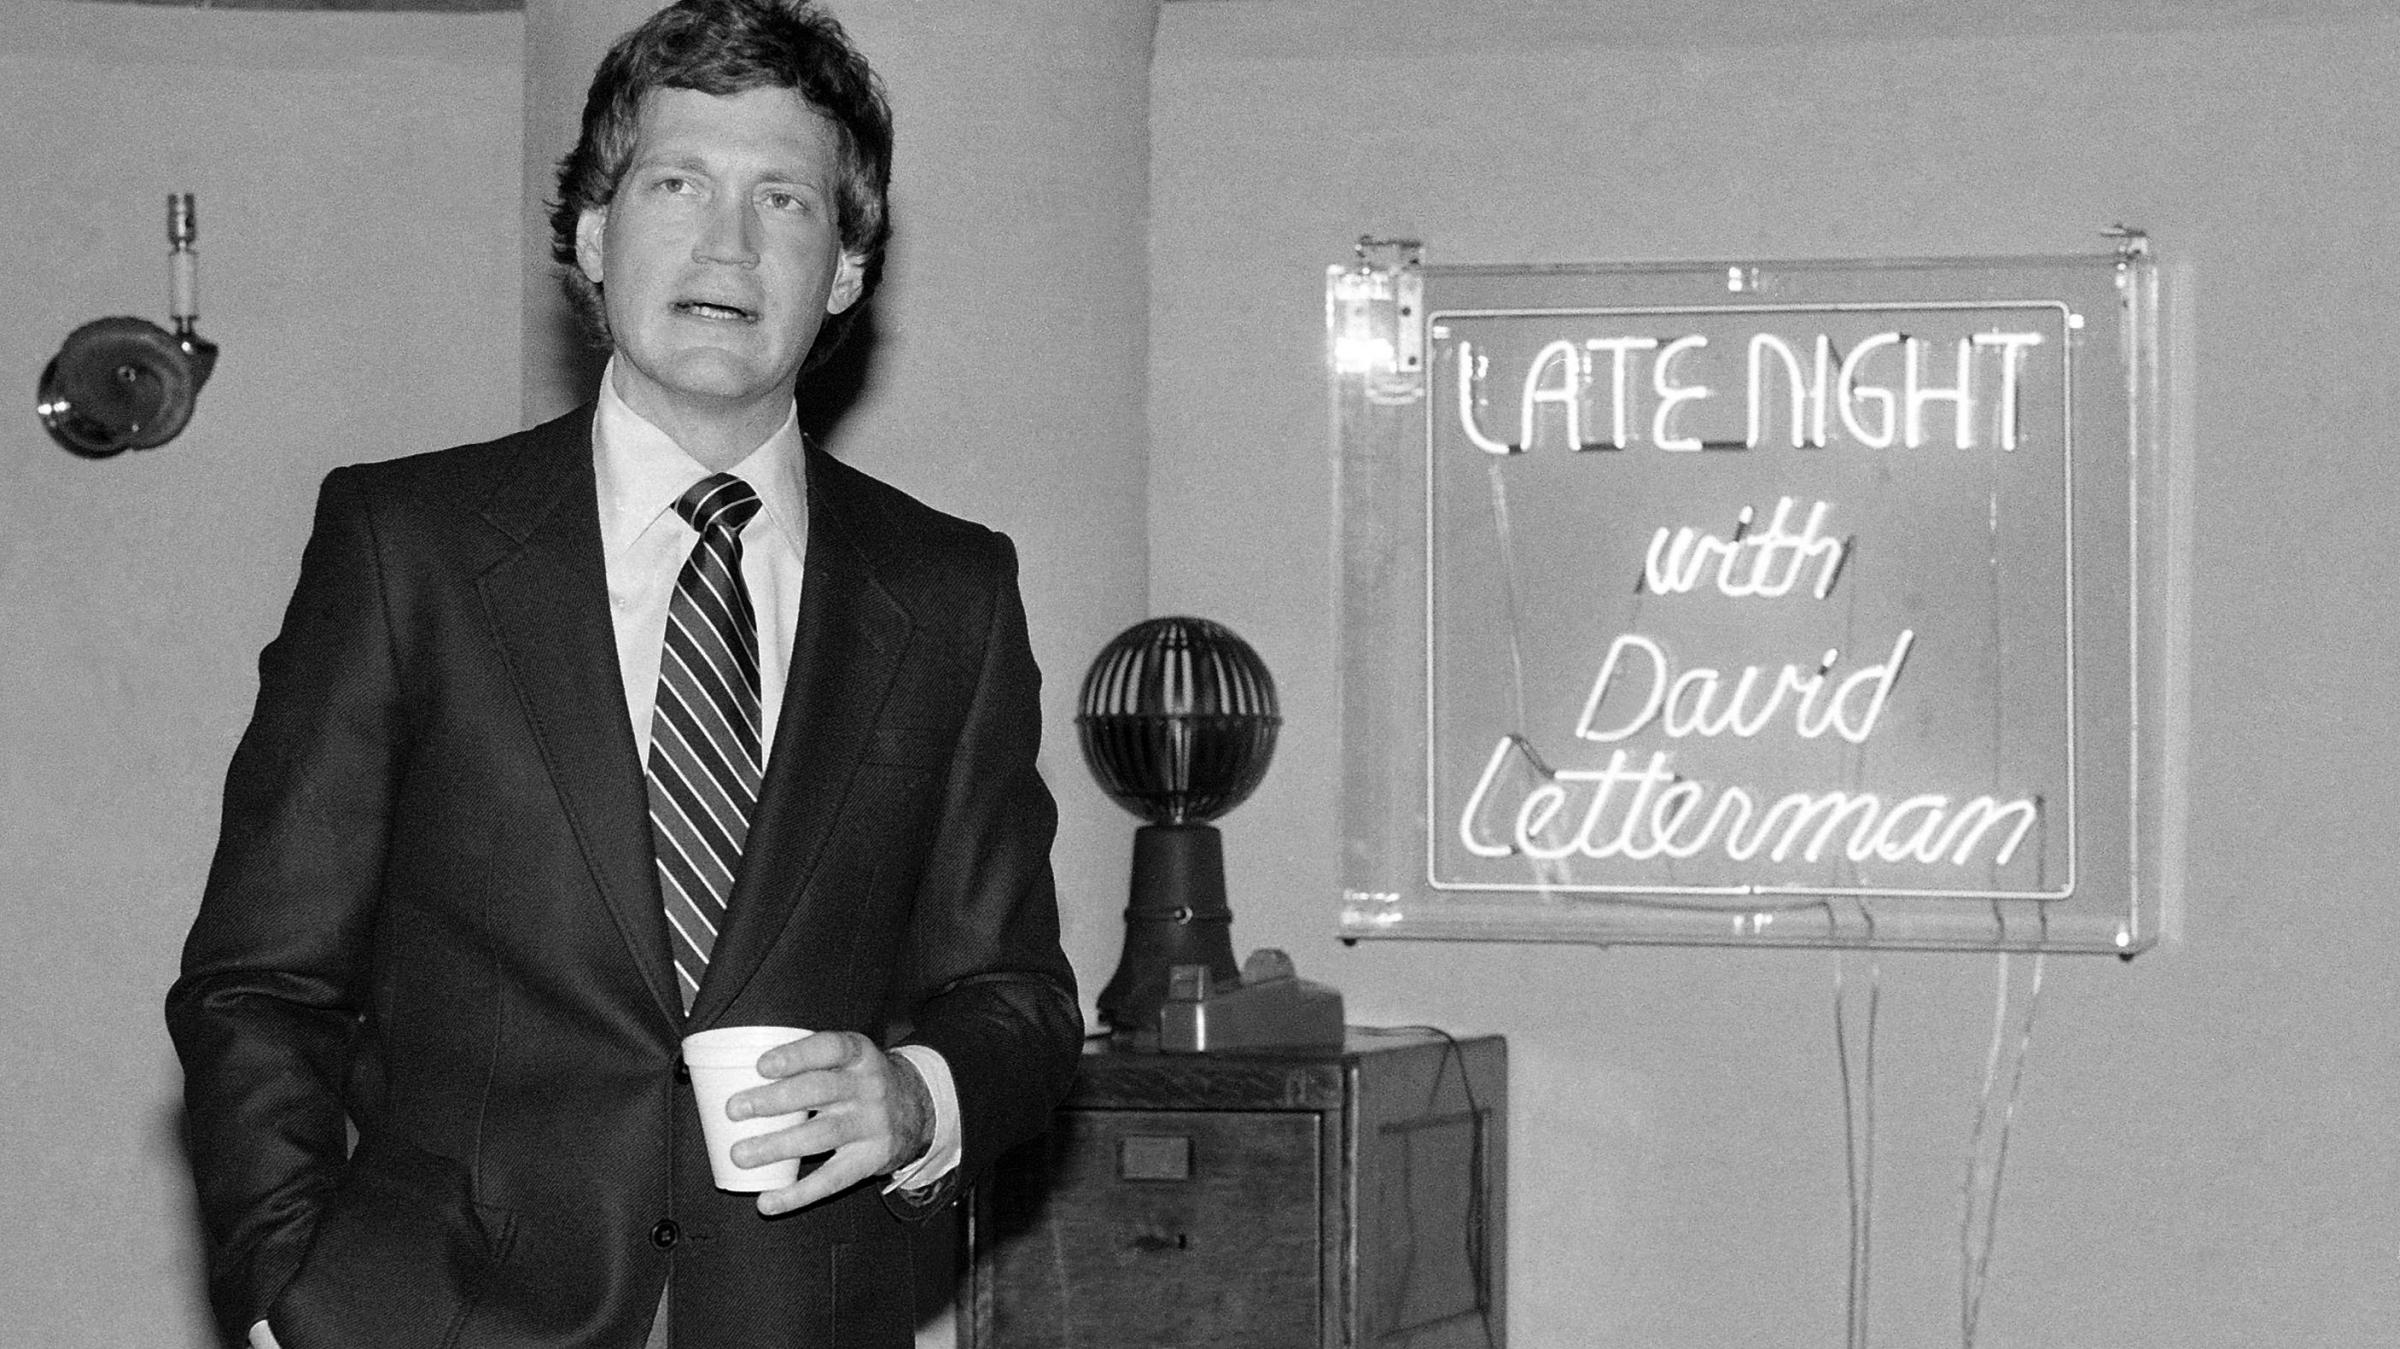 Letterman And \'Tonight\' Vet Go Behind The Scenes Of Late Night | WYPR